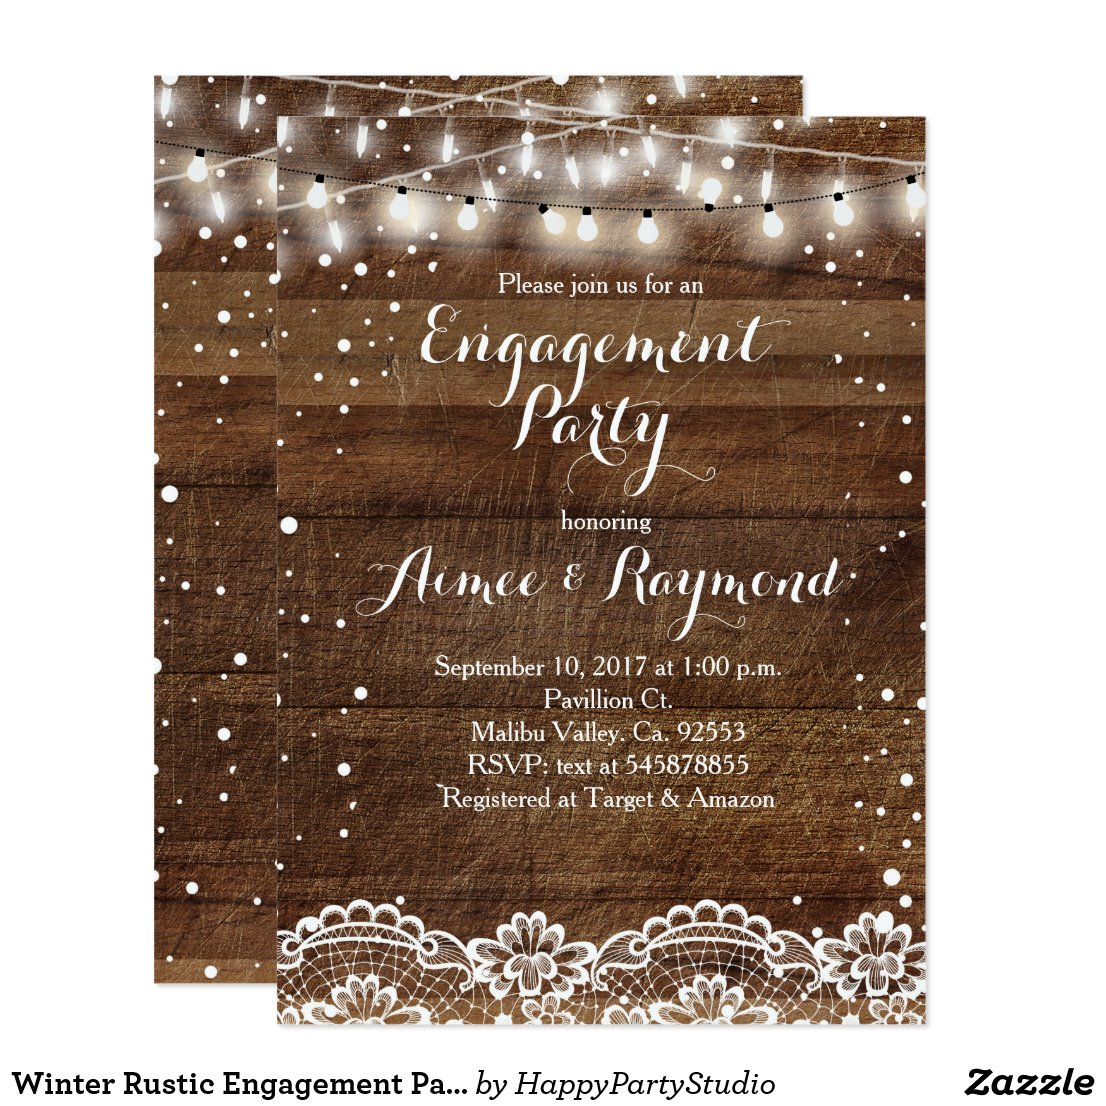 Winter Rustic Engagement Party Invitation